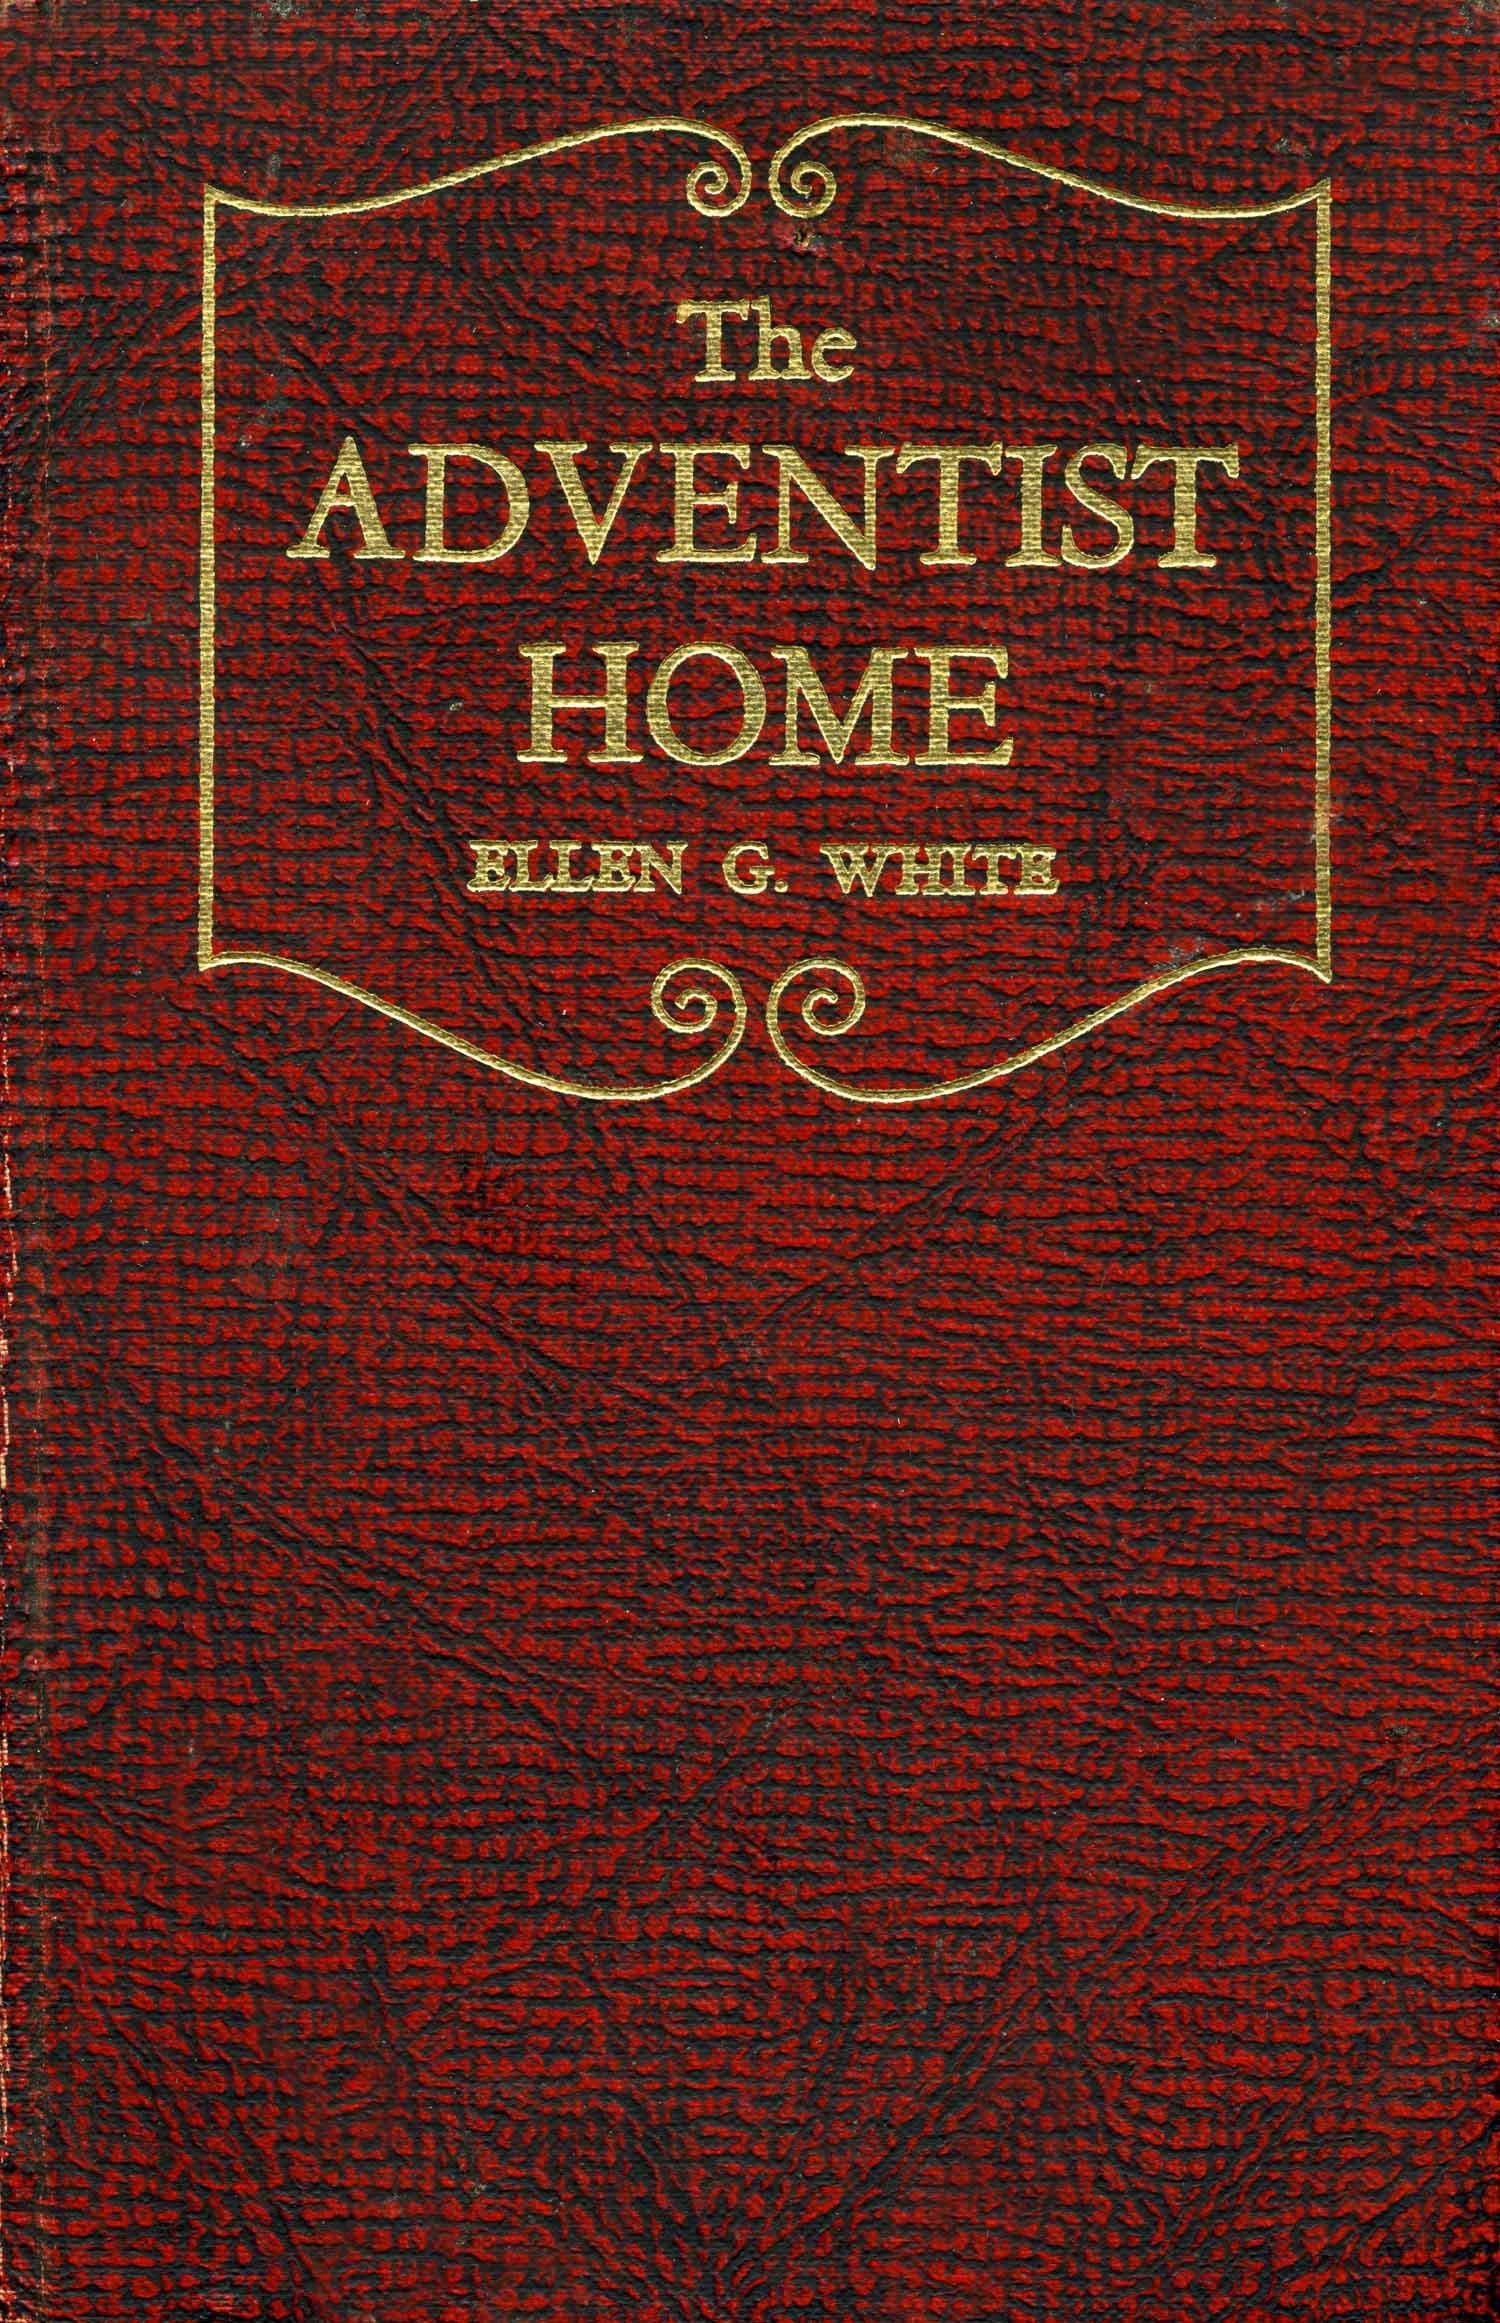 The Adventist Home, Ellen G. White